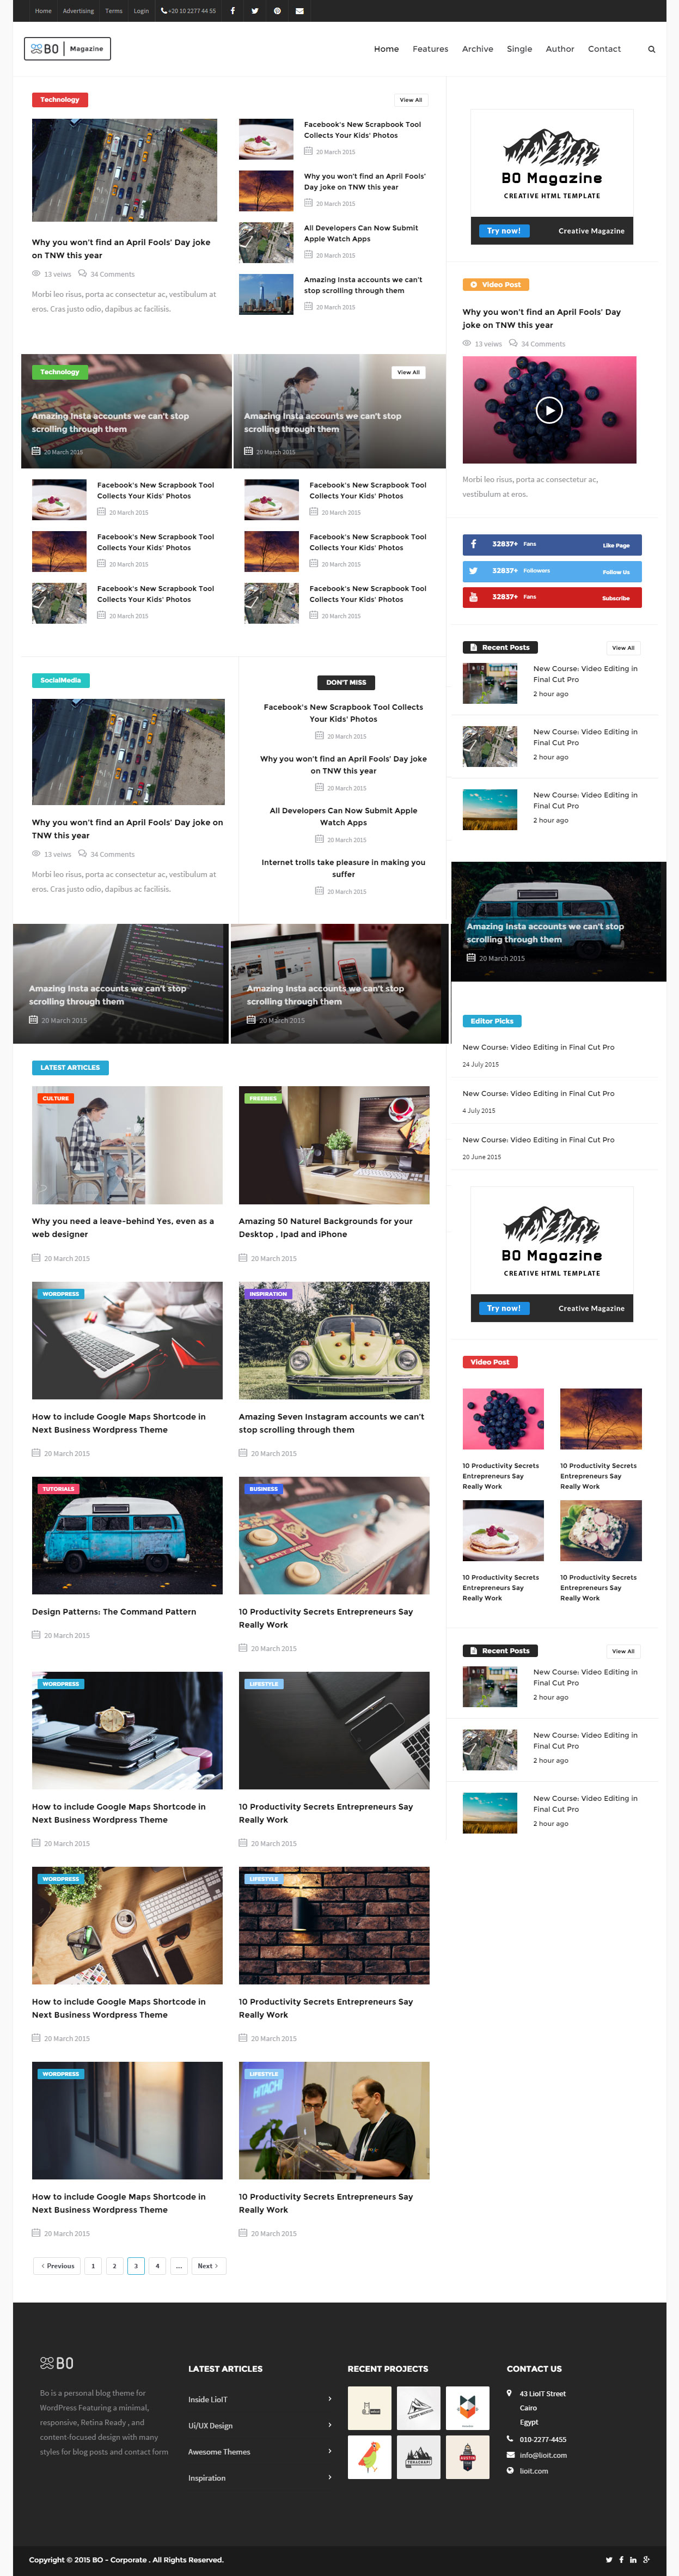 10 Best Responsive News and Magazine HTML5 Templates in 2015 ...